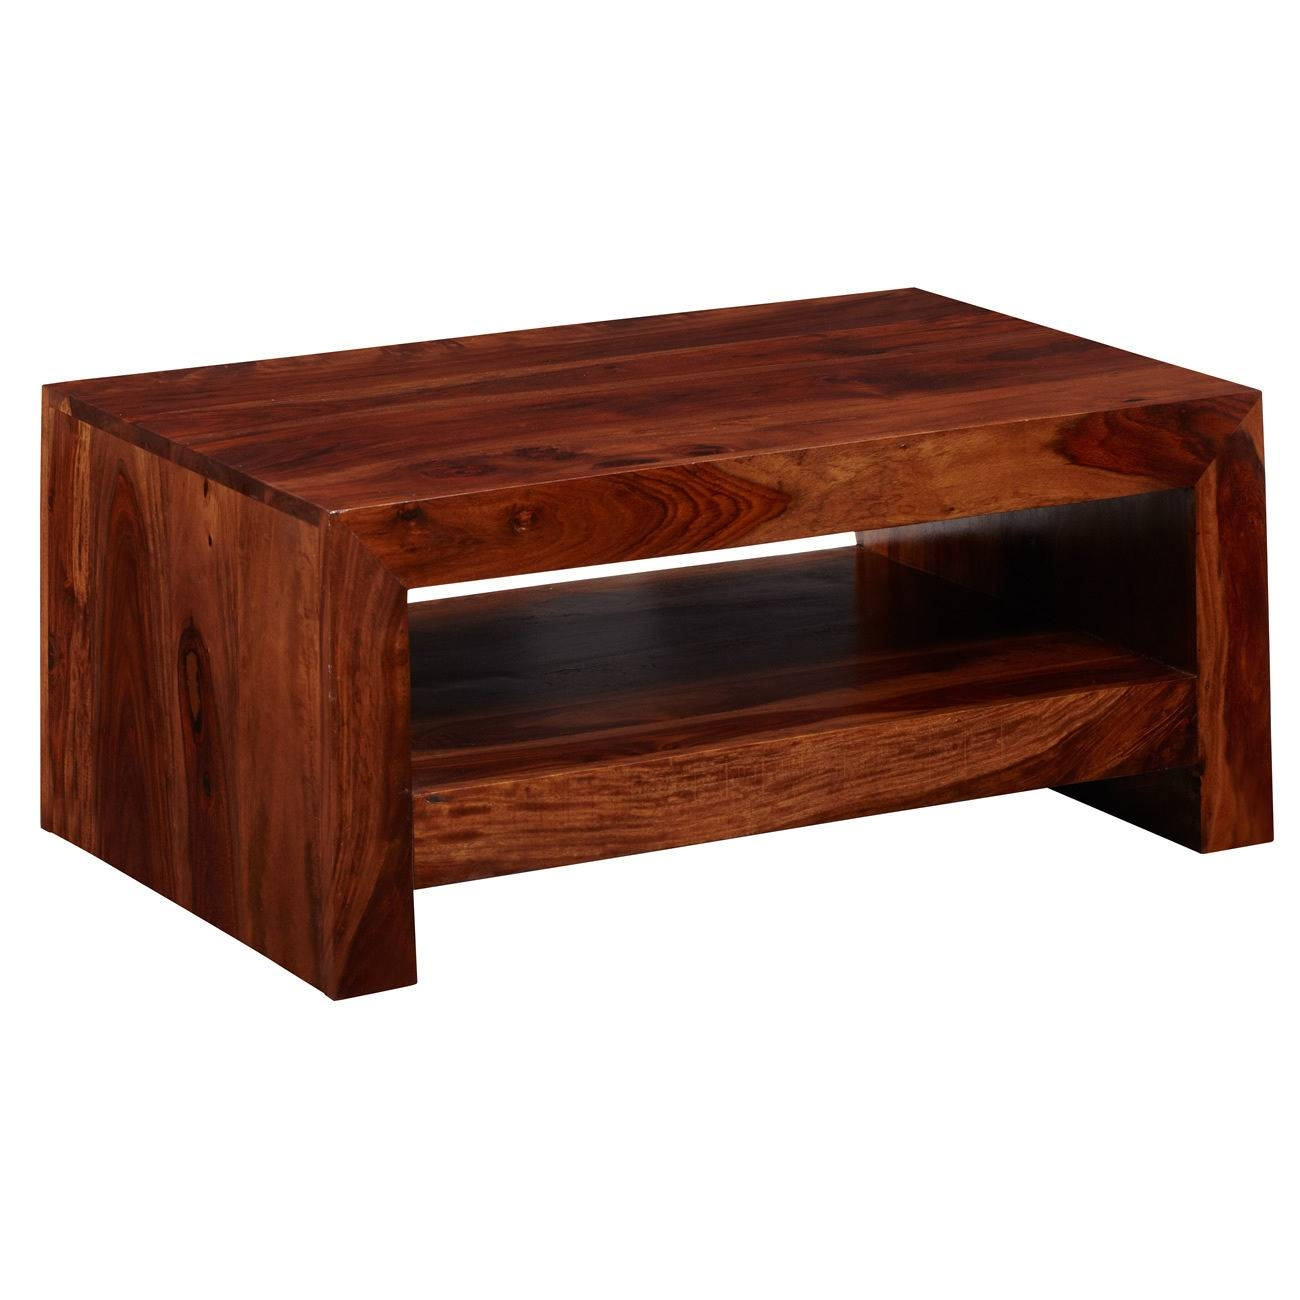 2019 Latest Chunky Rustic Coffee Tables